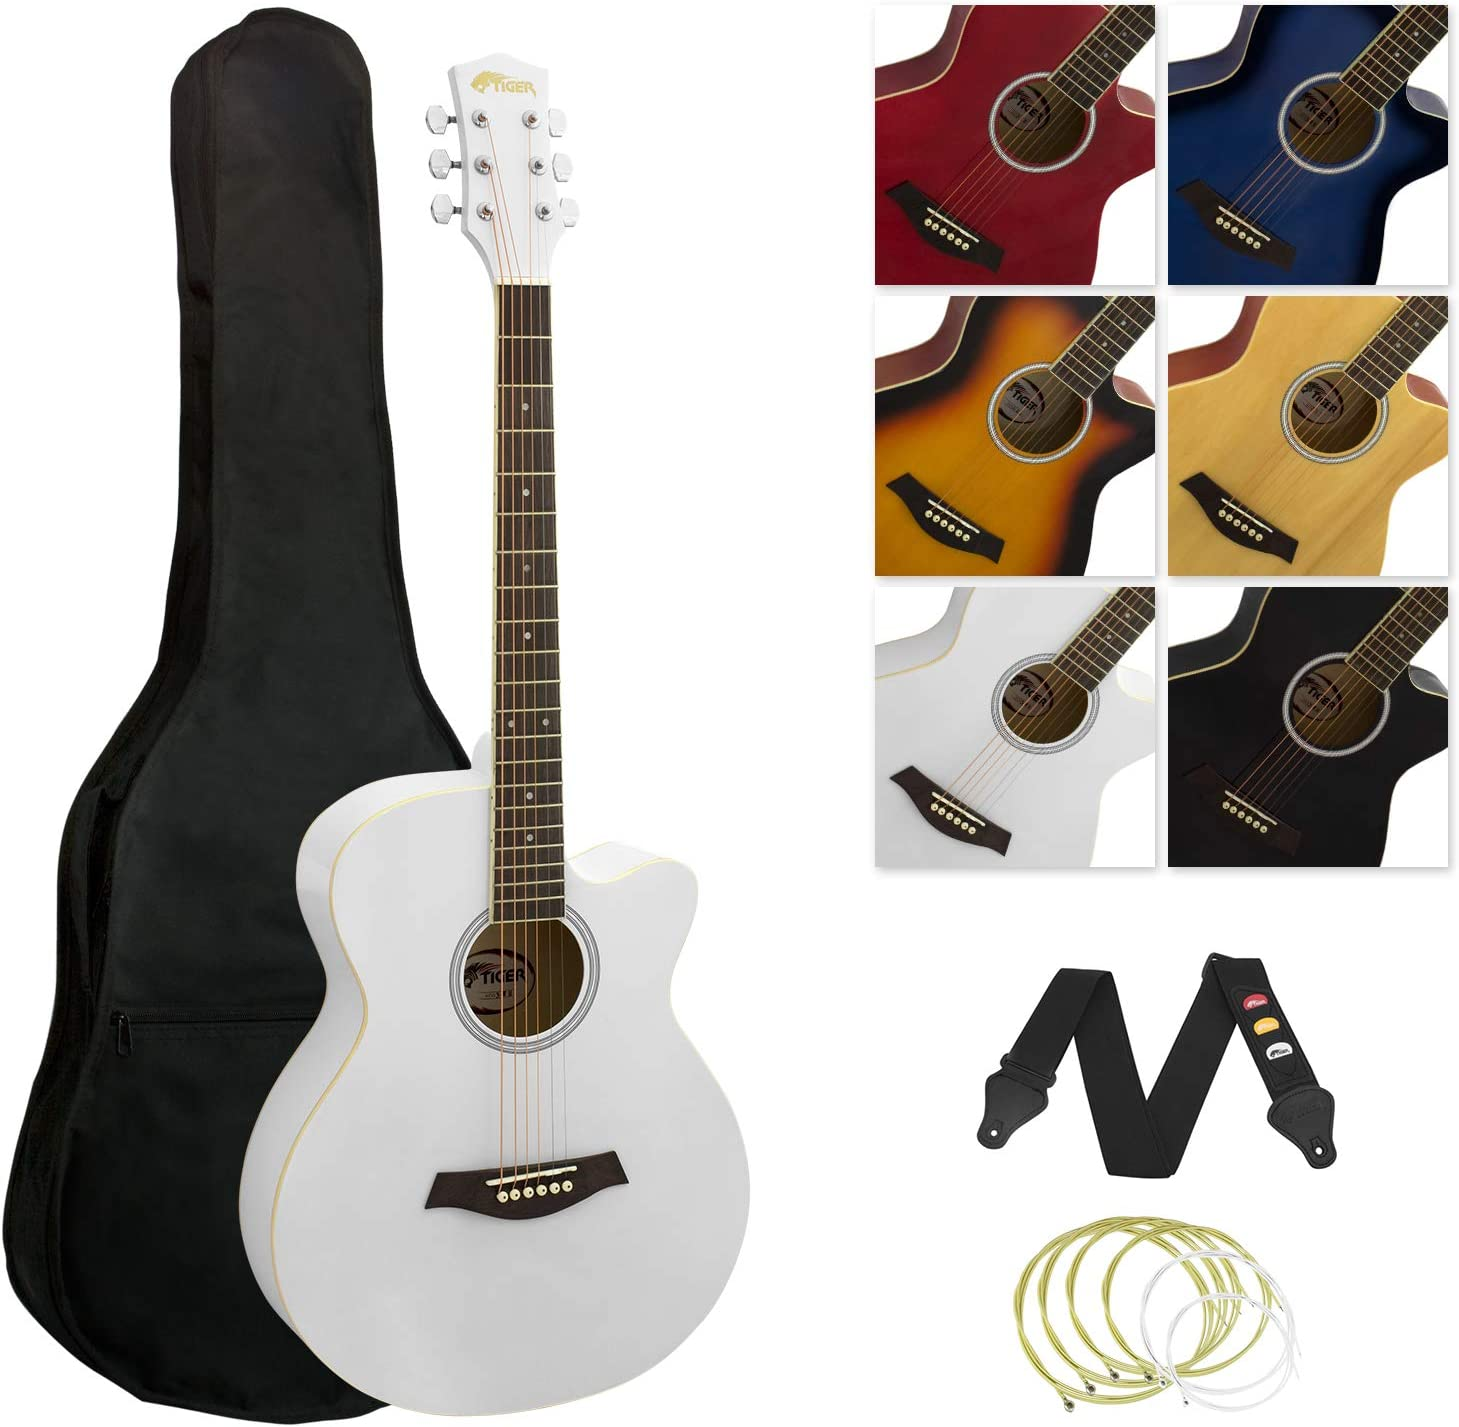 Tiger - Guitarra acústica, diseño recortado, color blanco: Amazon ...